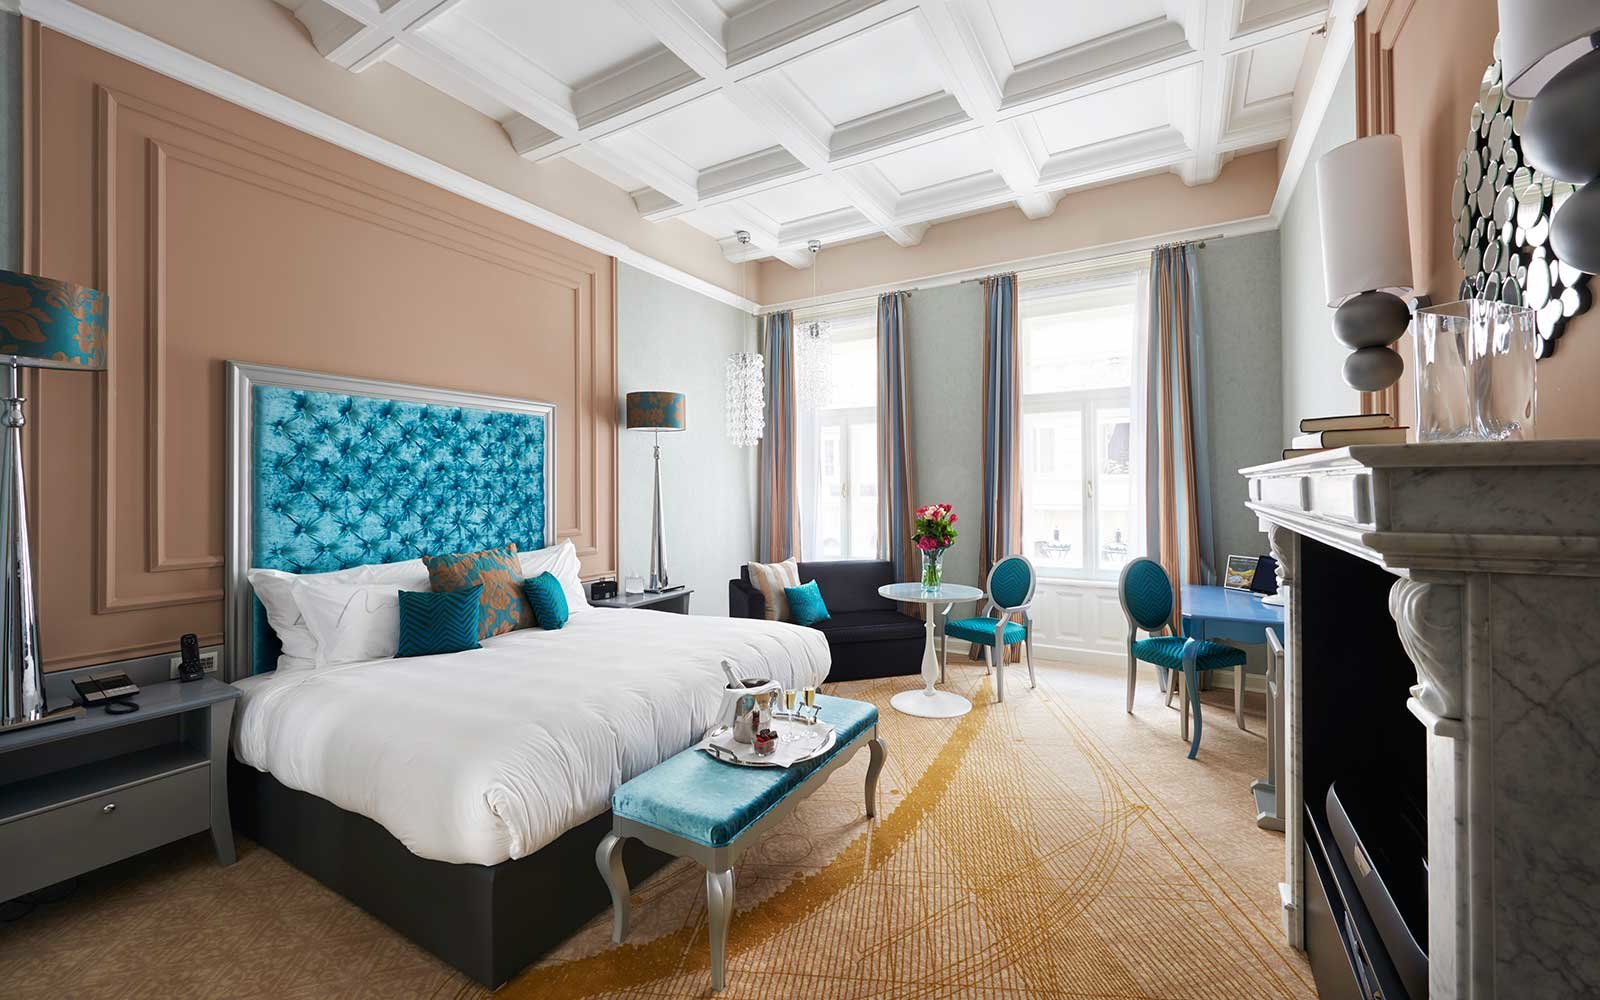 Aria Hotel Budapest in Europe